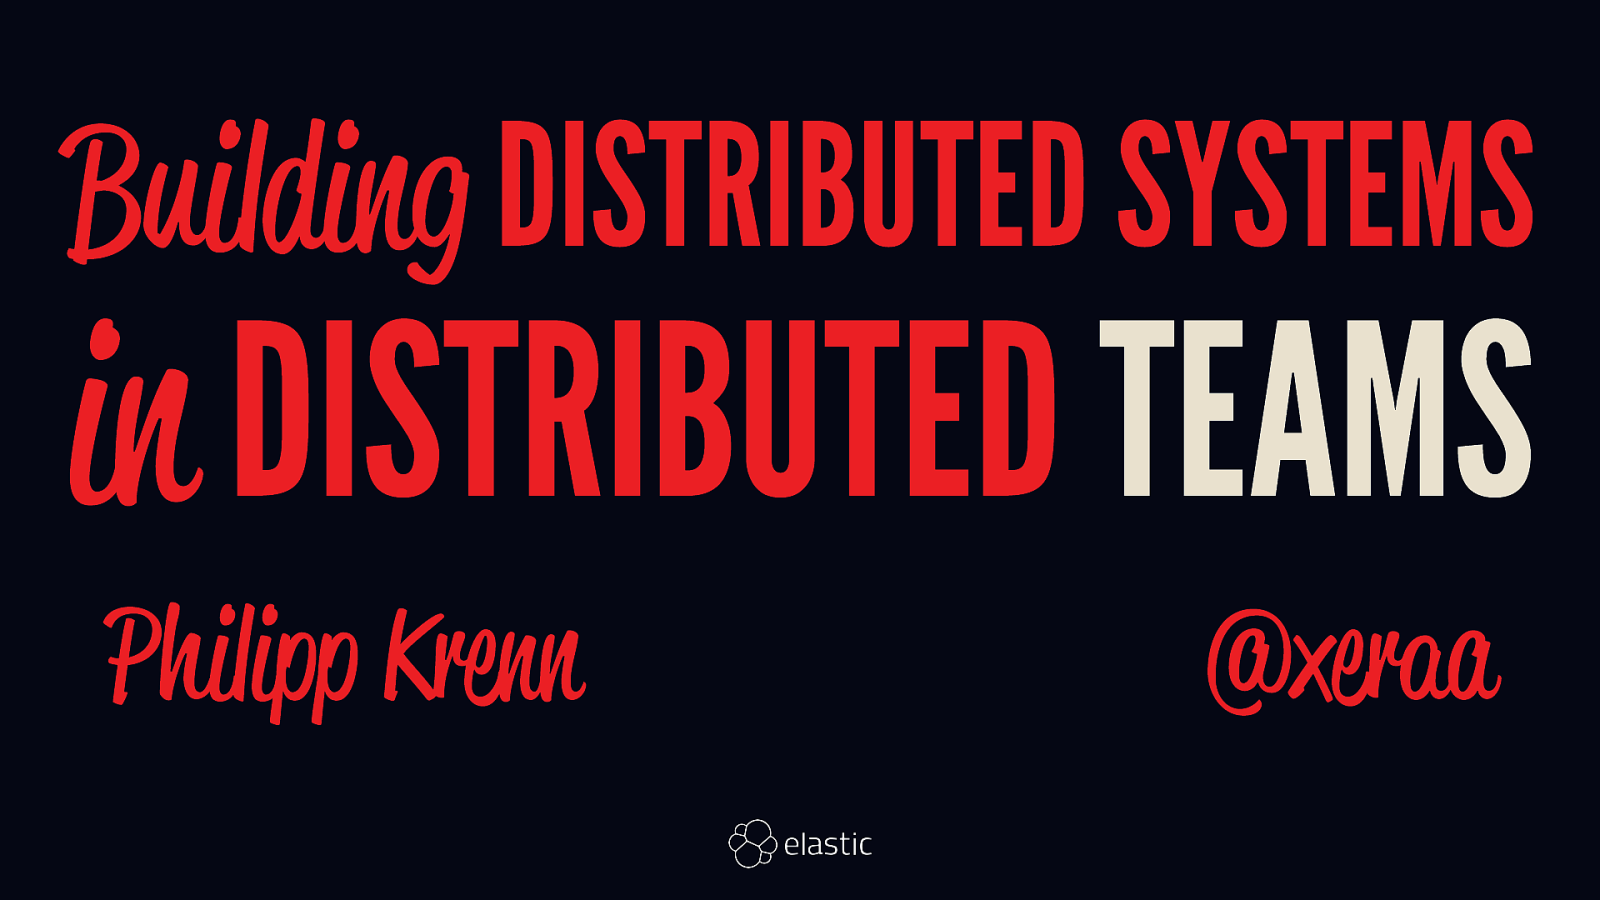 Building Distributed Systems in Distributed Teams